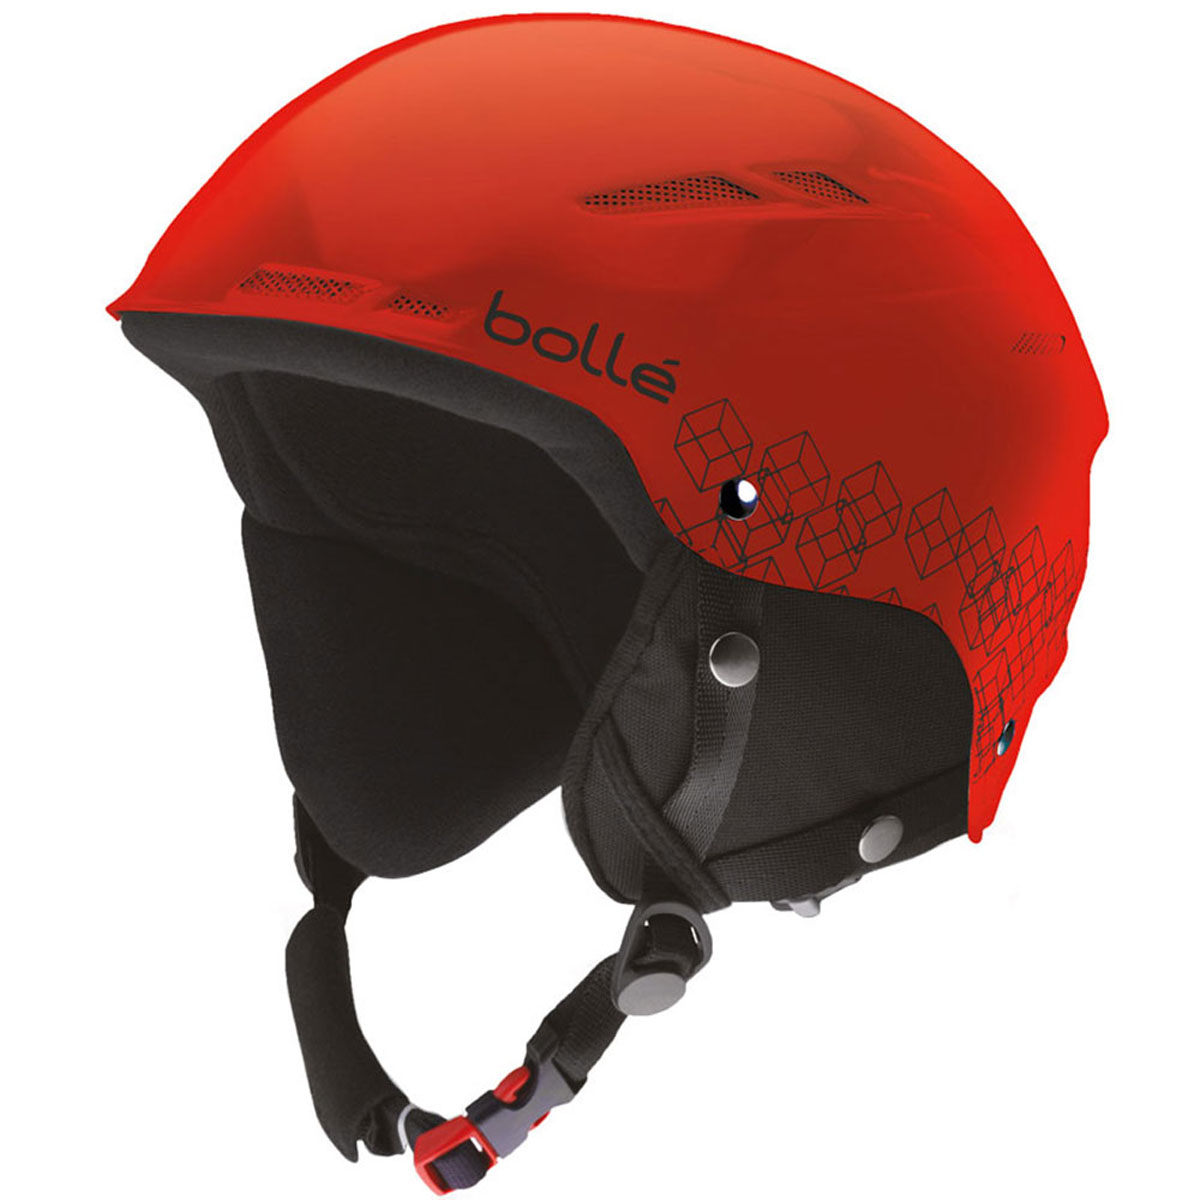 Bolle B-Rent Jr. Ski Helmet by Bolle